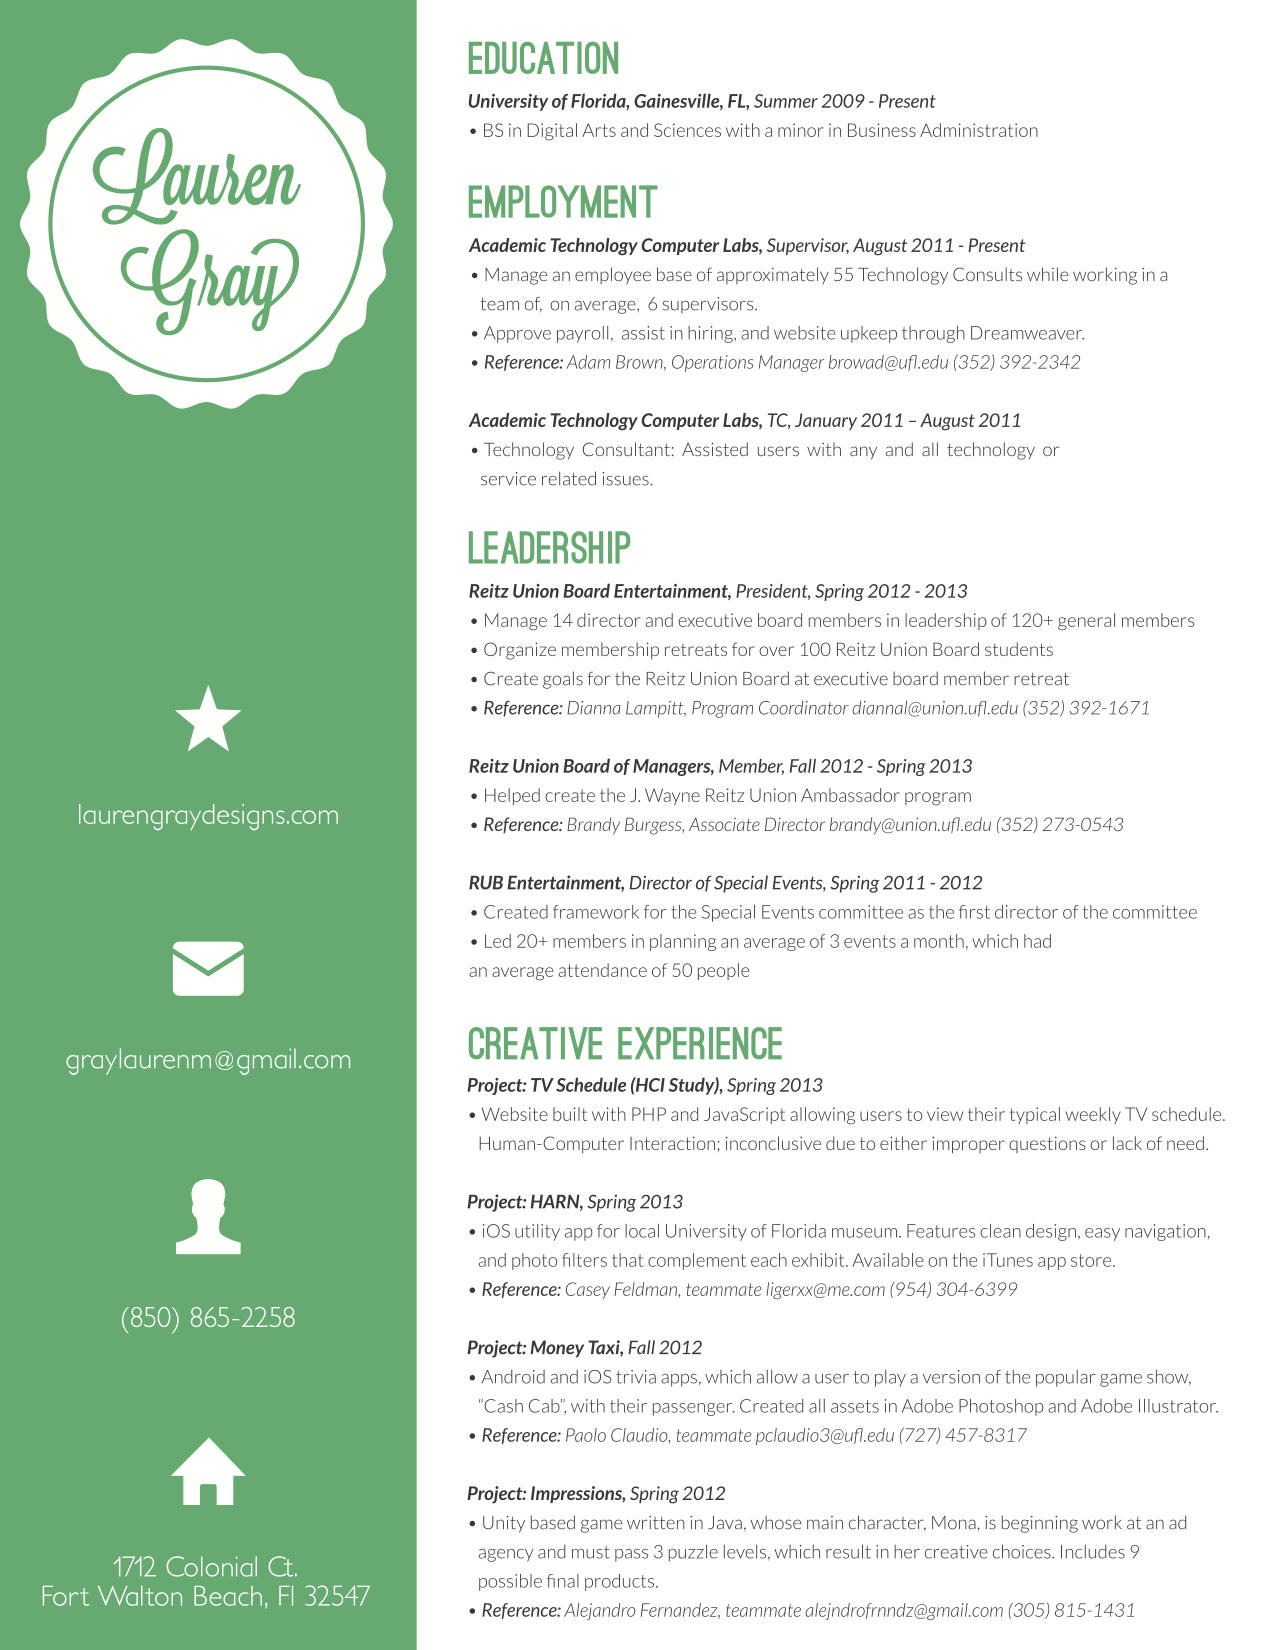 Lauren Gray Resume Design This Could Almost Be My Resume